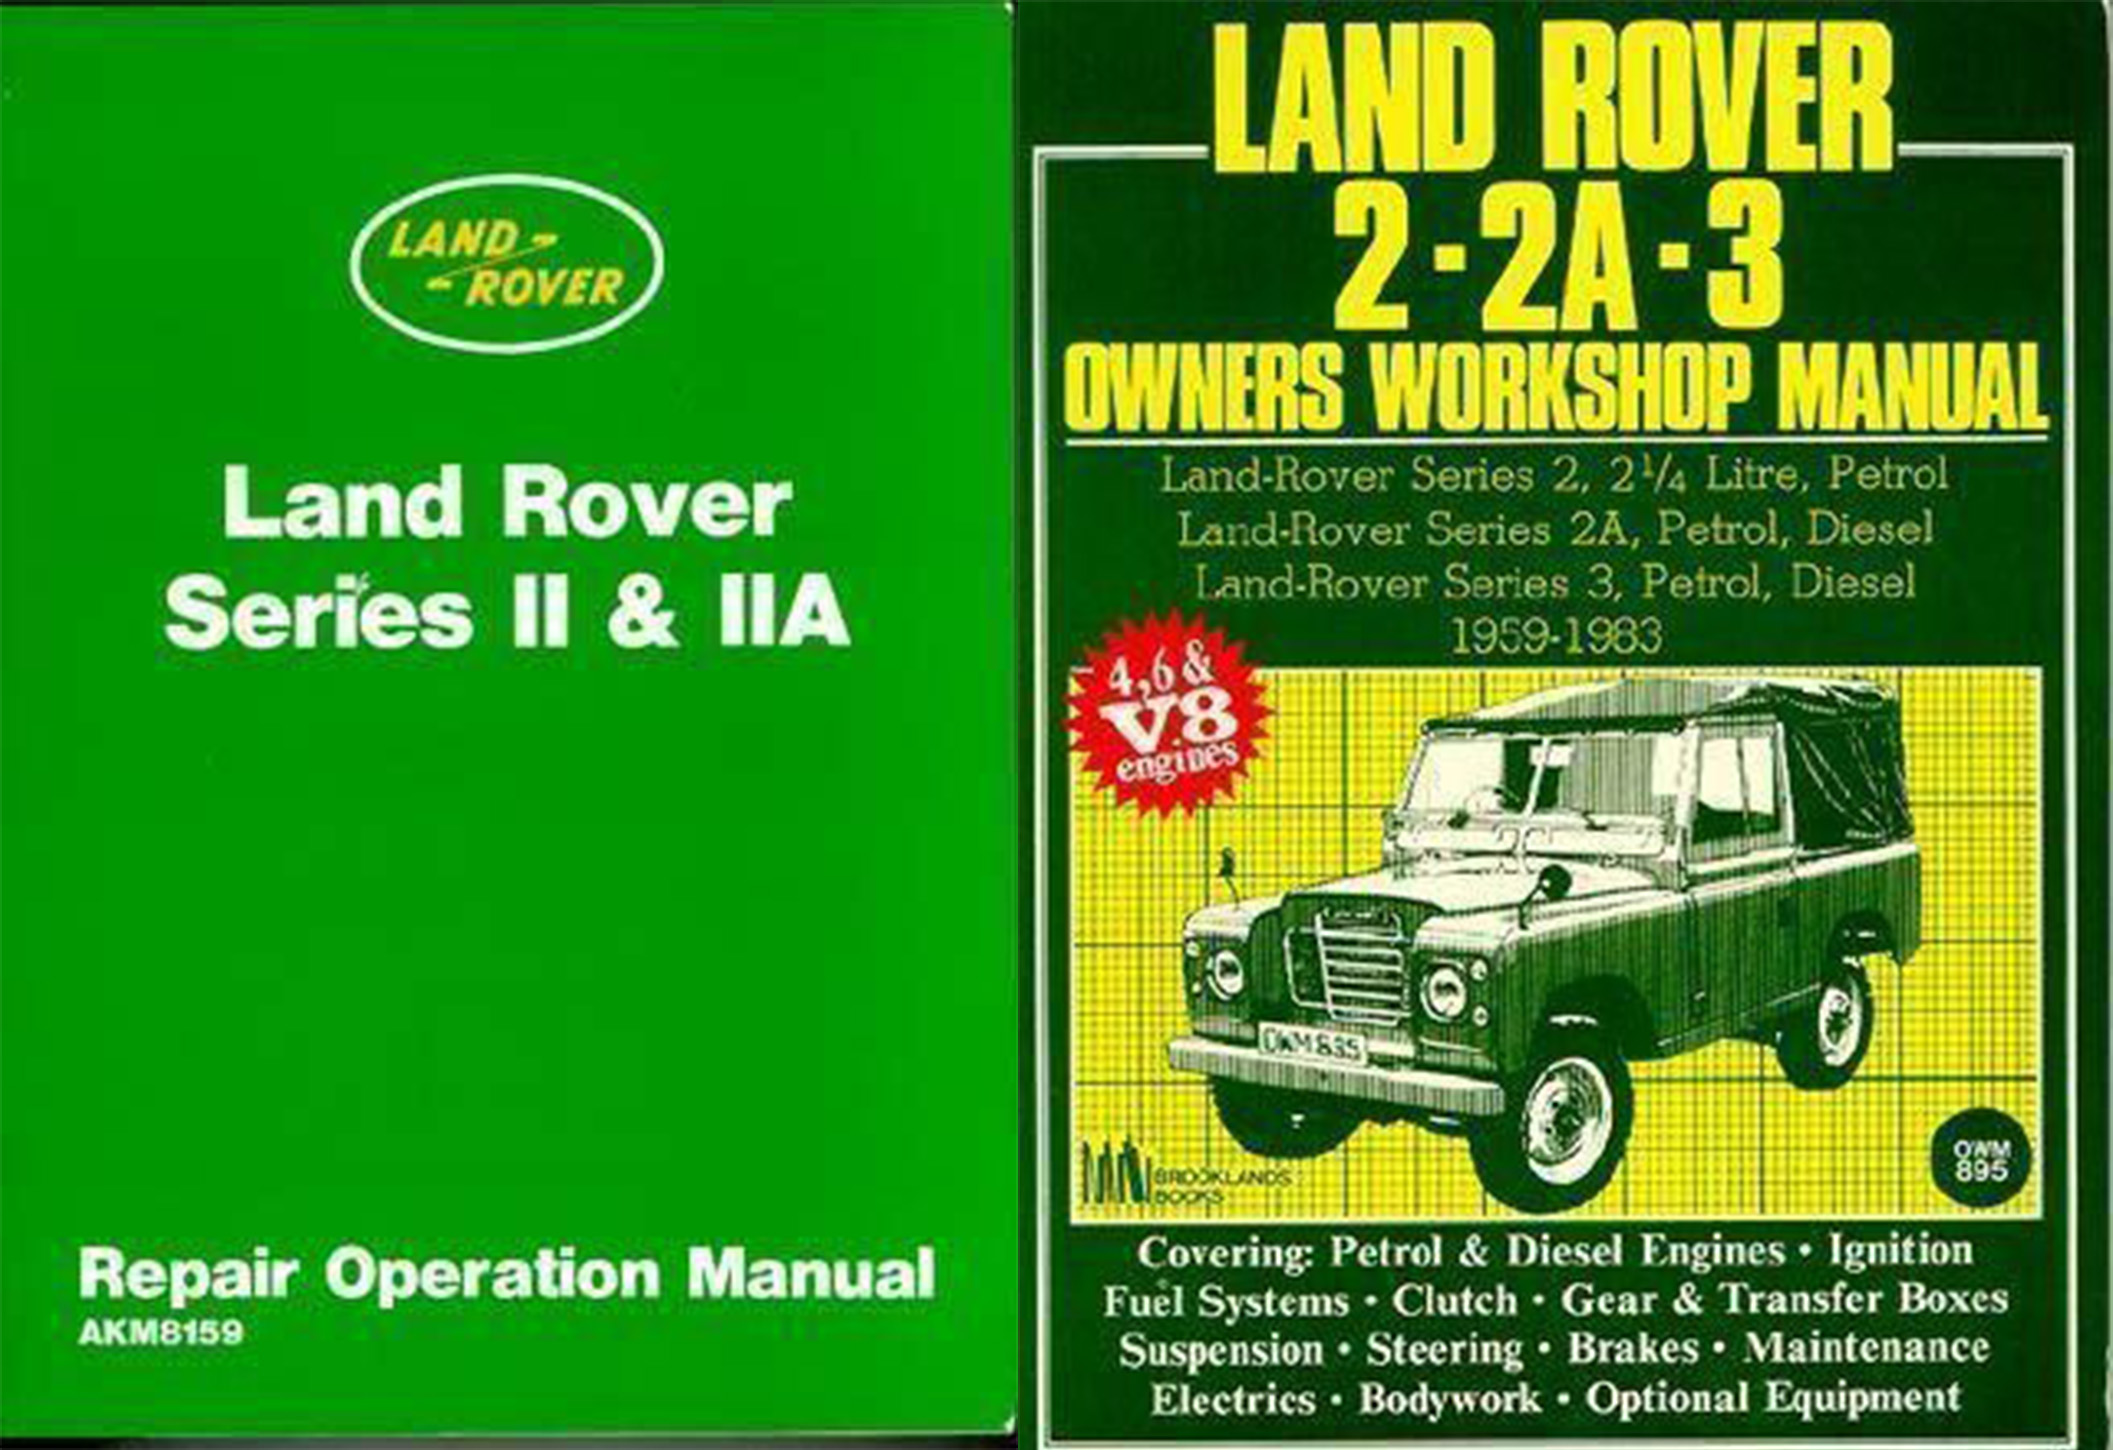 Factory Land Rover 2